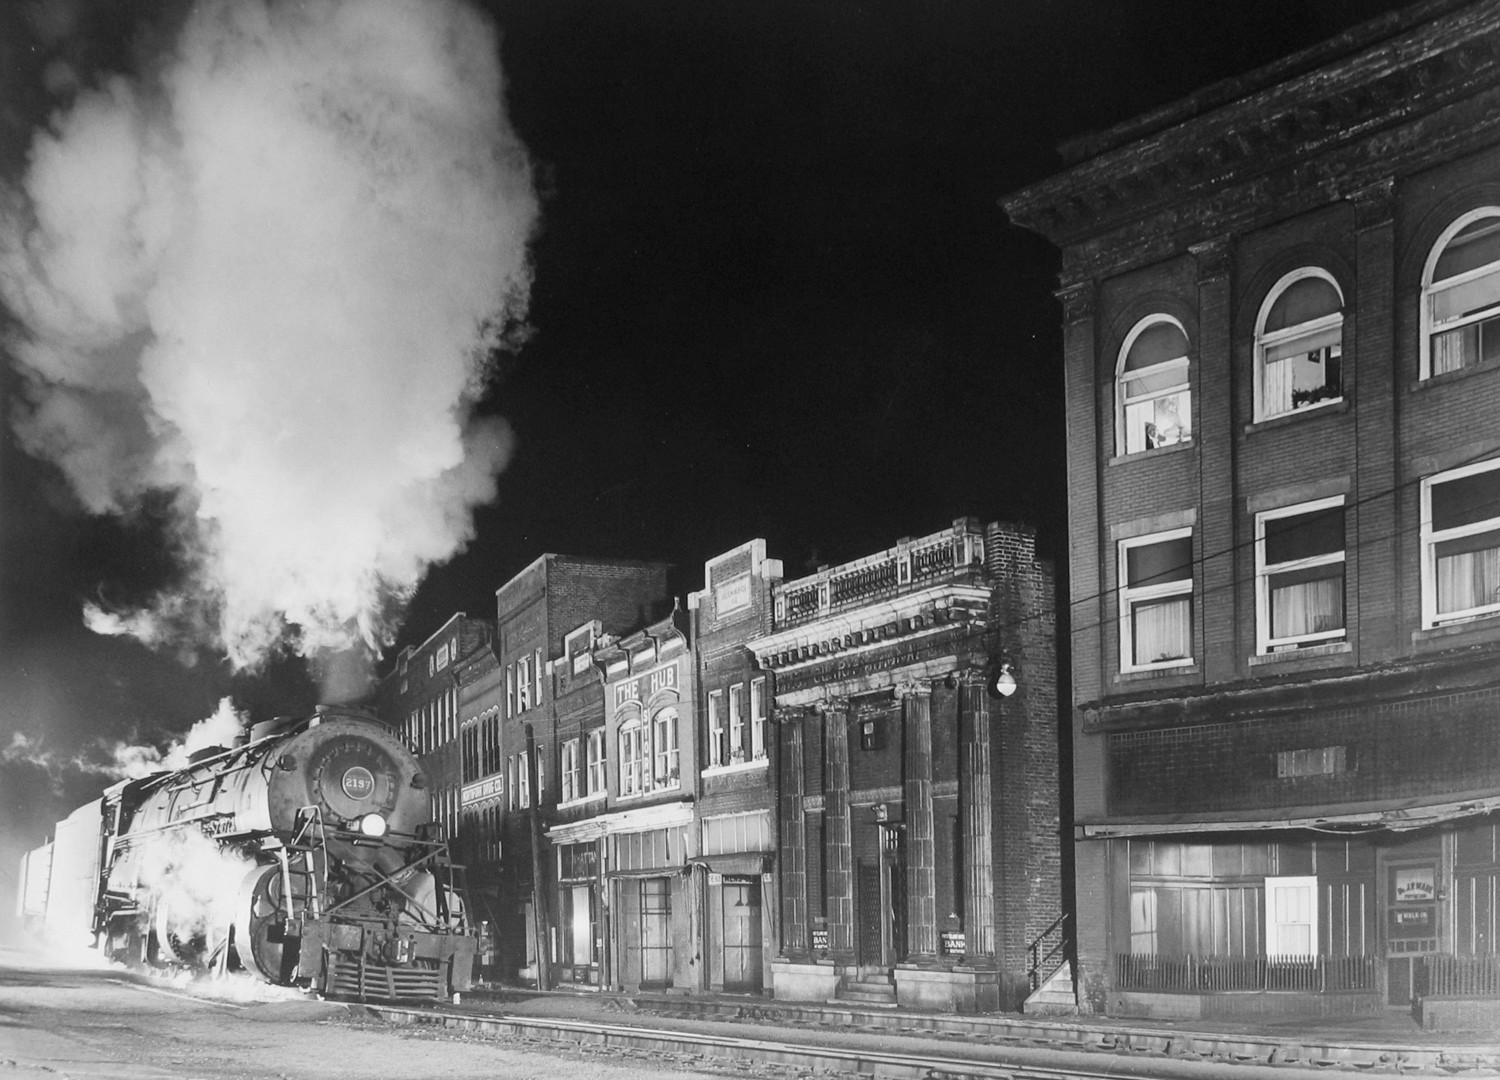 O. Winston Link, Main Line on Main Street, Northfork, West Virginia, 1958